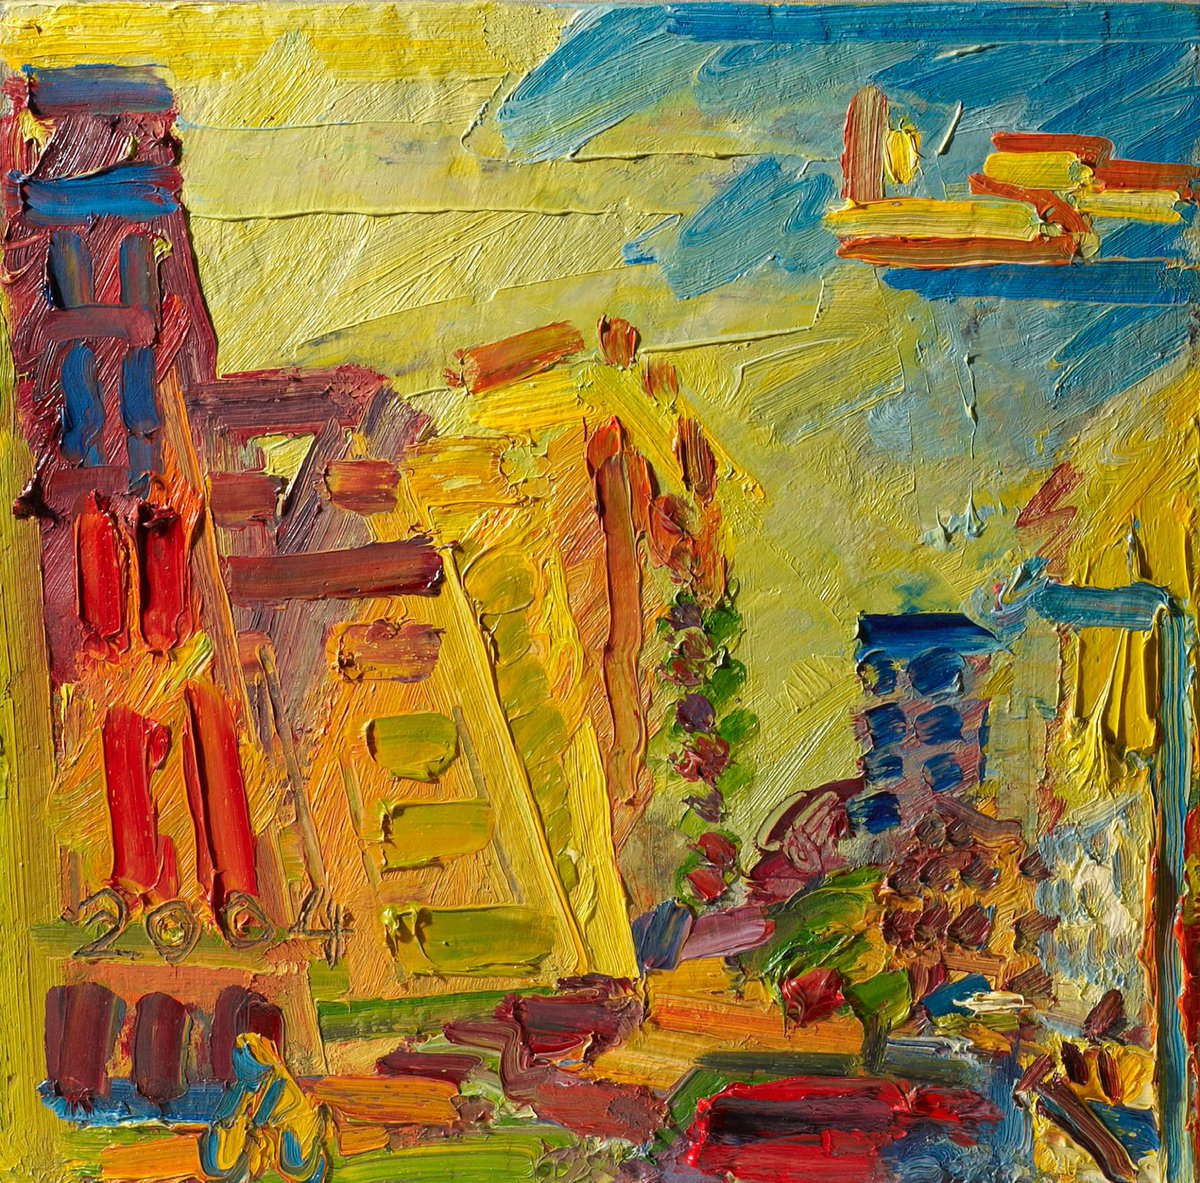 7 days to go for the opening of our new exhibition 'Acquisition Highlights since 2001'. This vibrant landscape by Frank Auerbach 'Mornington Crescent, Summer Morning II' was acquired in 2004 and featured in BBC's 'Your Paintings: Masterpieces in Schools' in 2013.